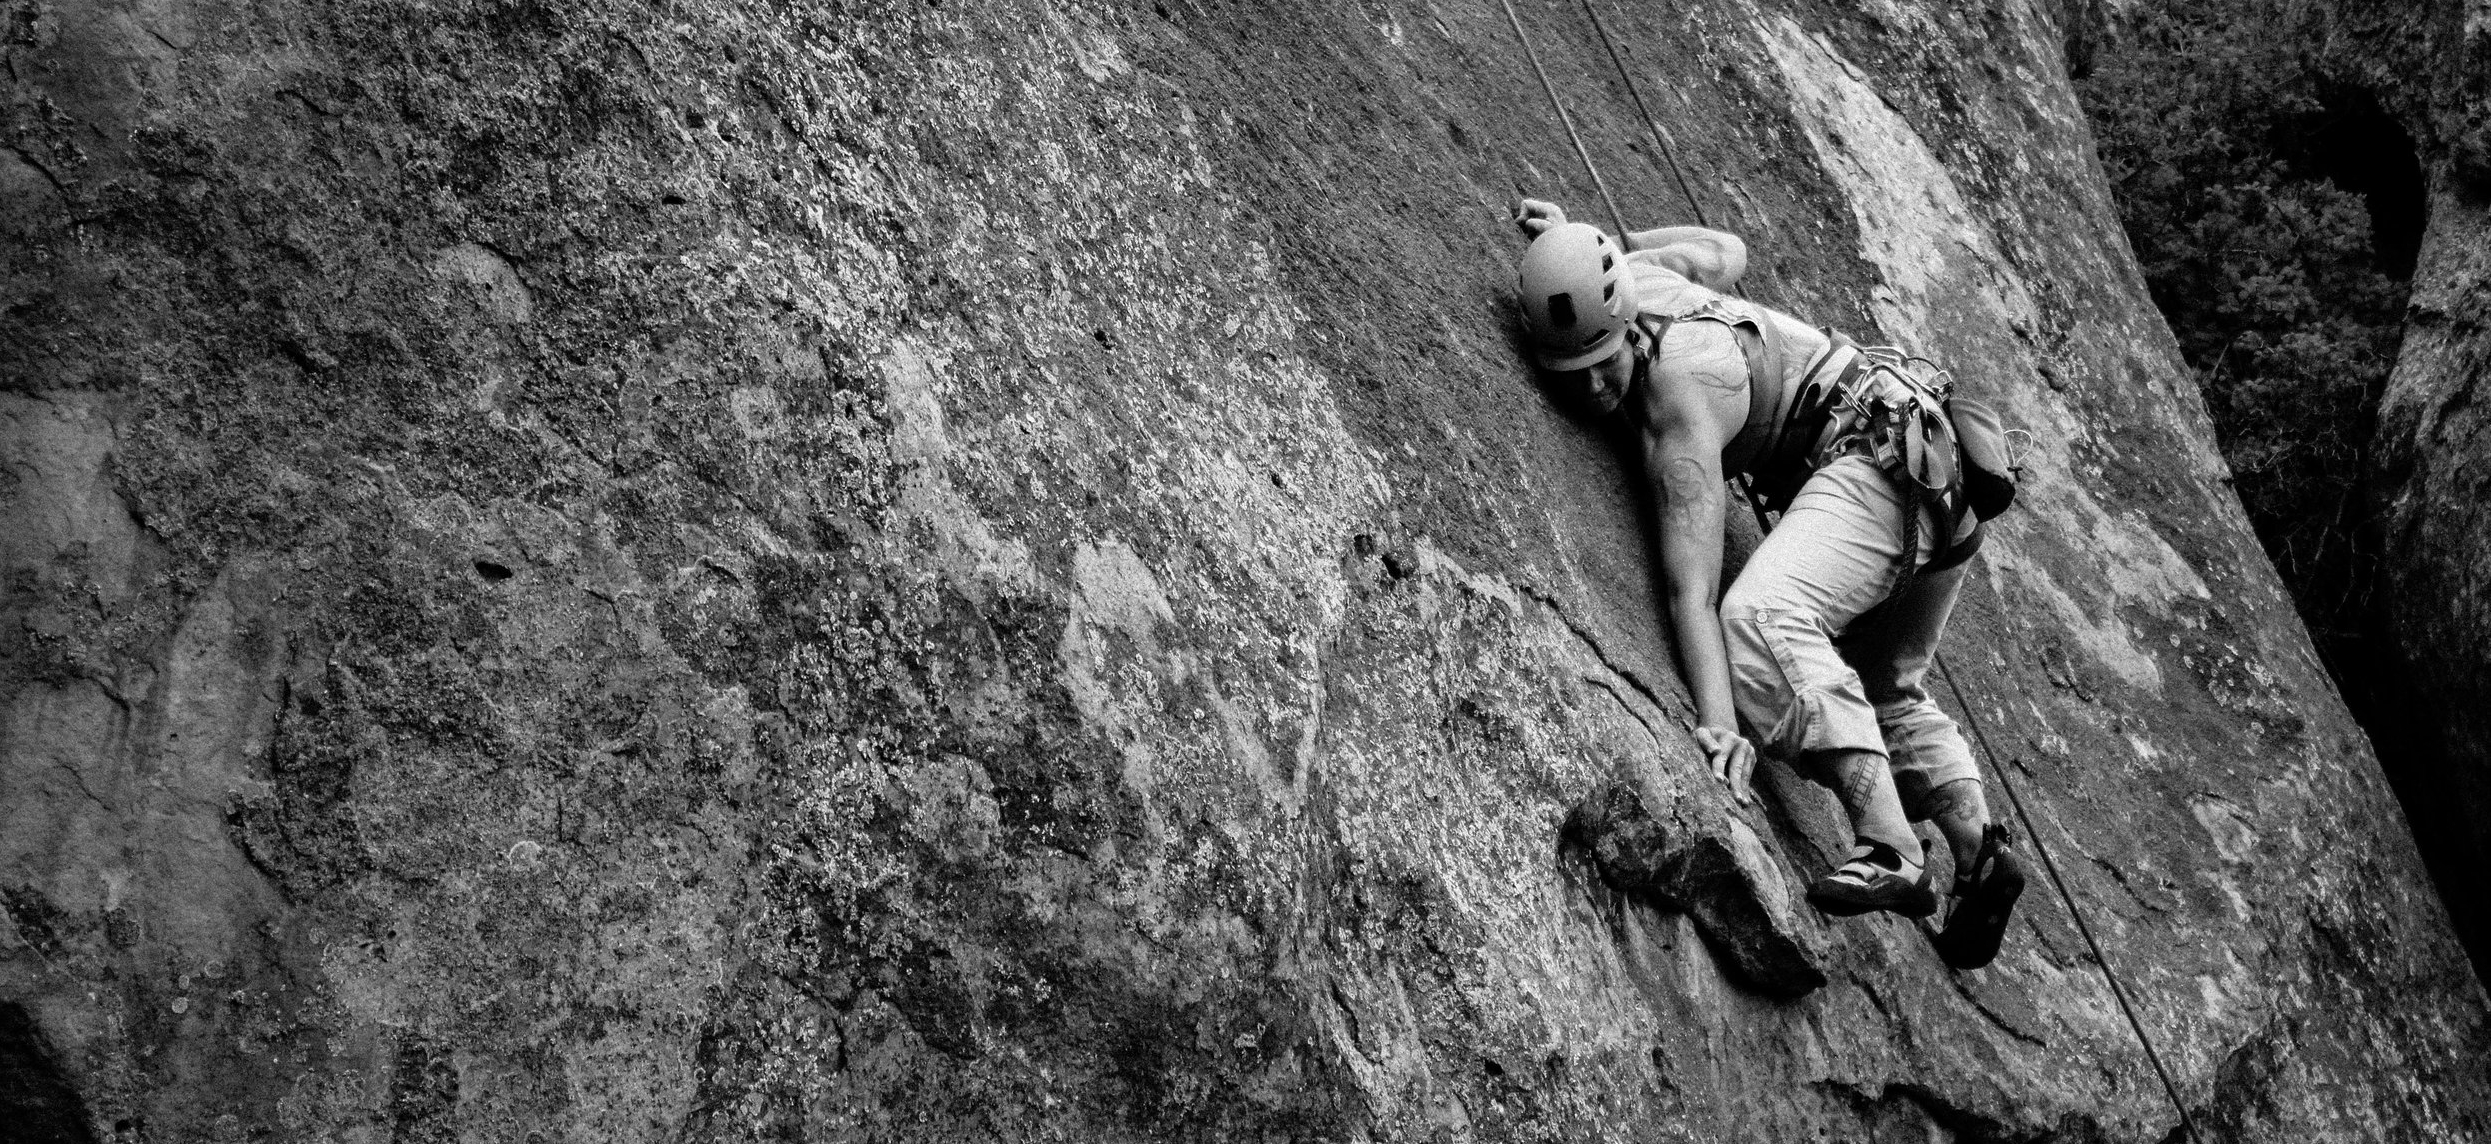 Stacey McKenna climbs 'Drugs are Nice,' a 5.10a route at Penitente canyon, colorado. (Photo courtesy Stacey McKenna)